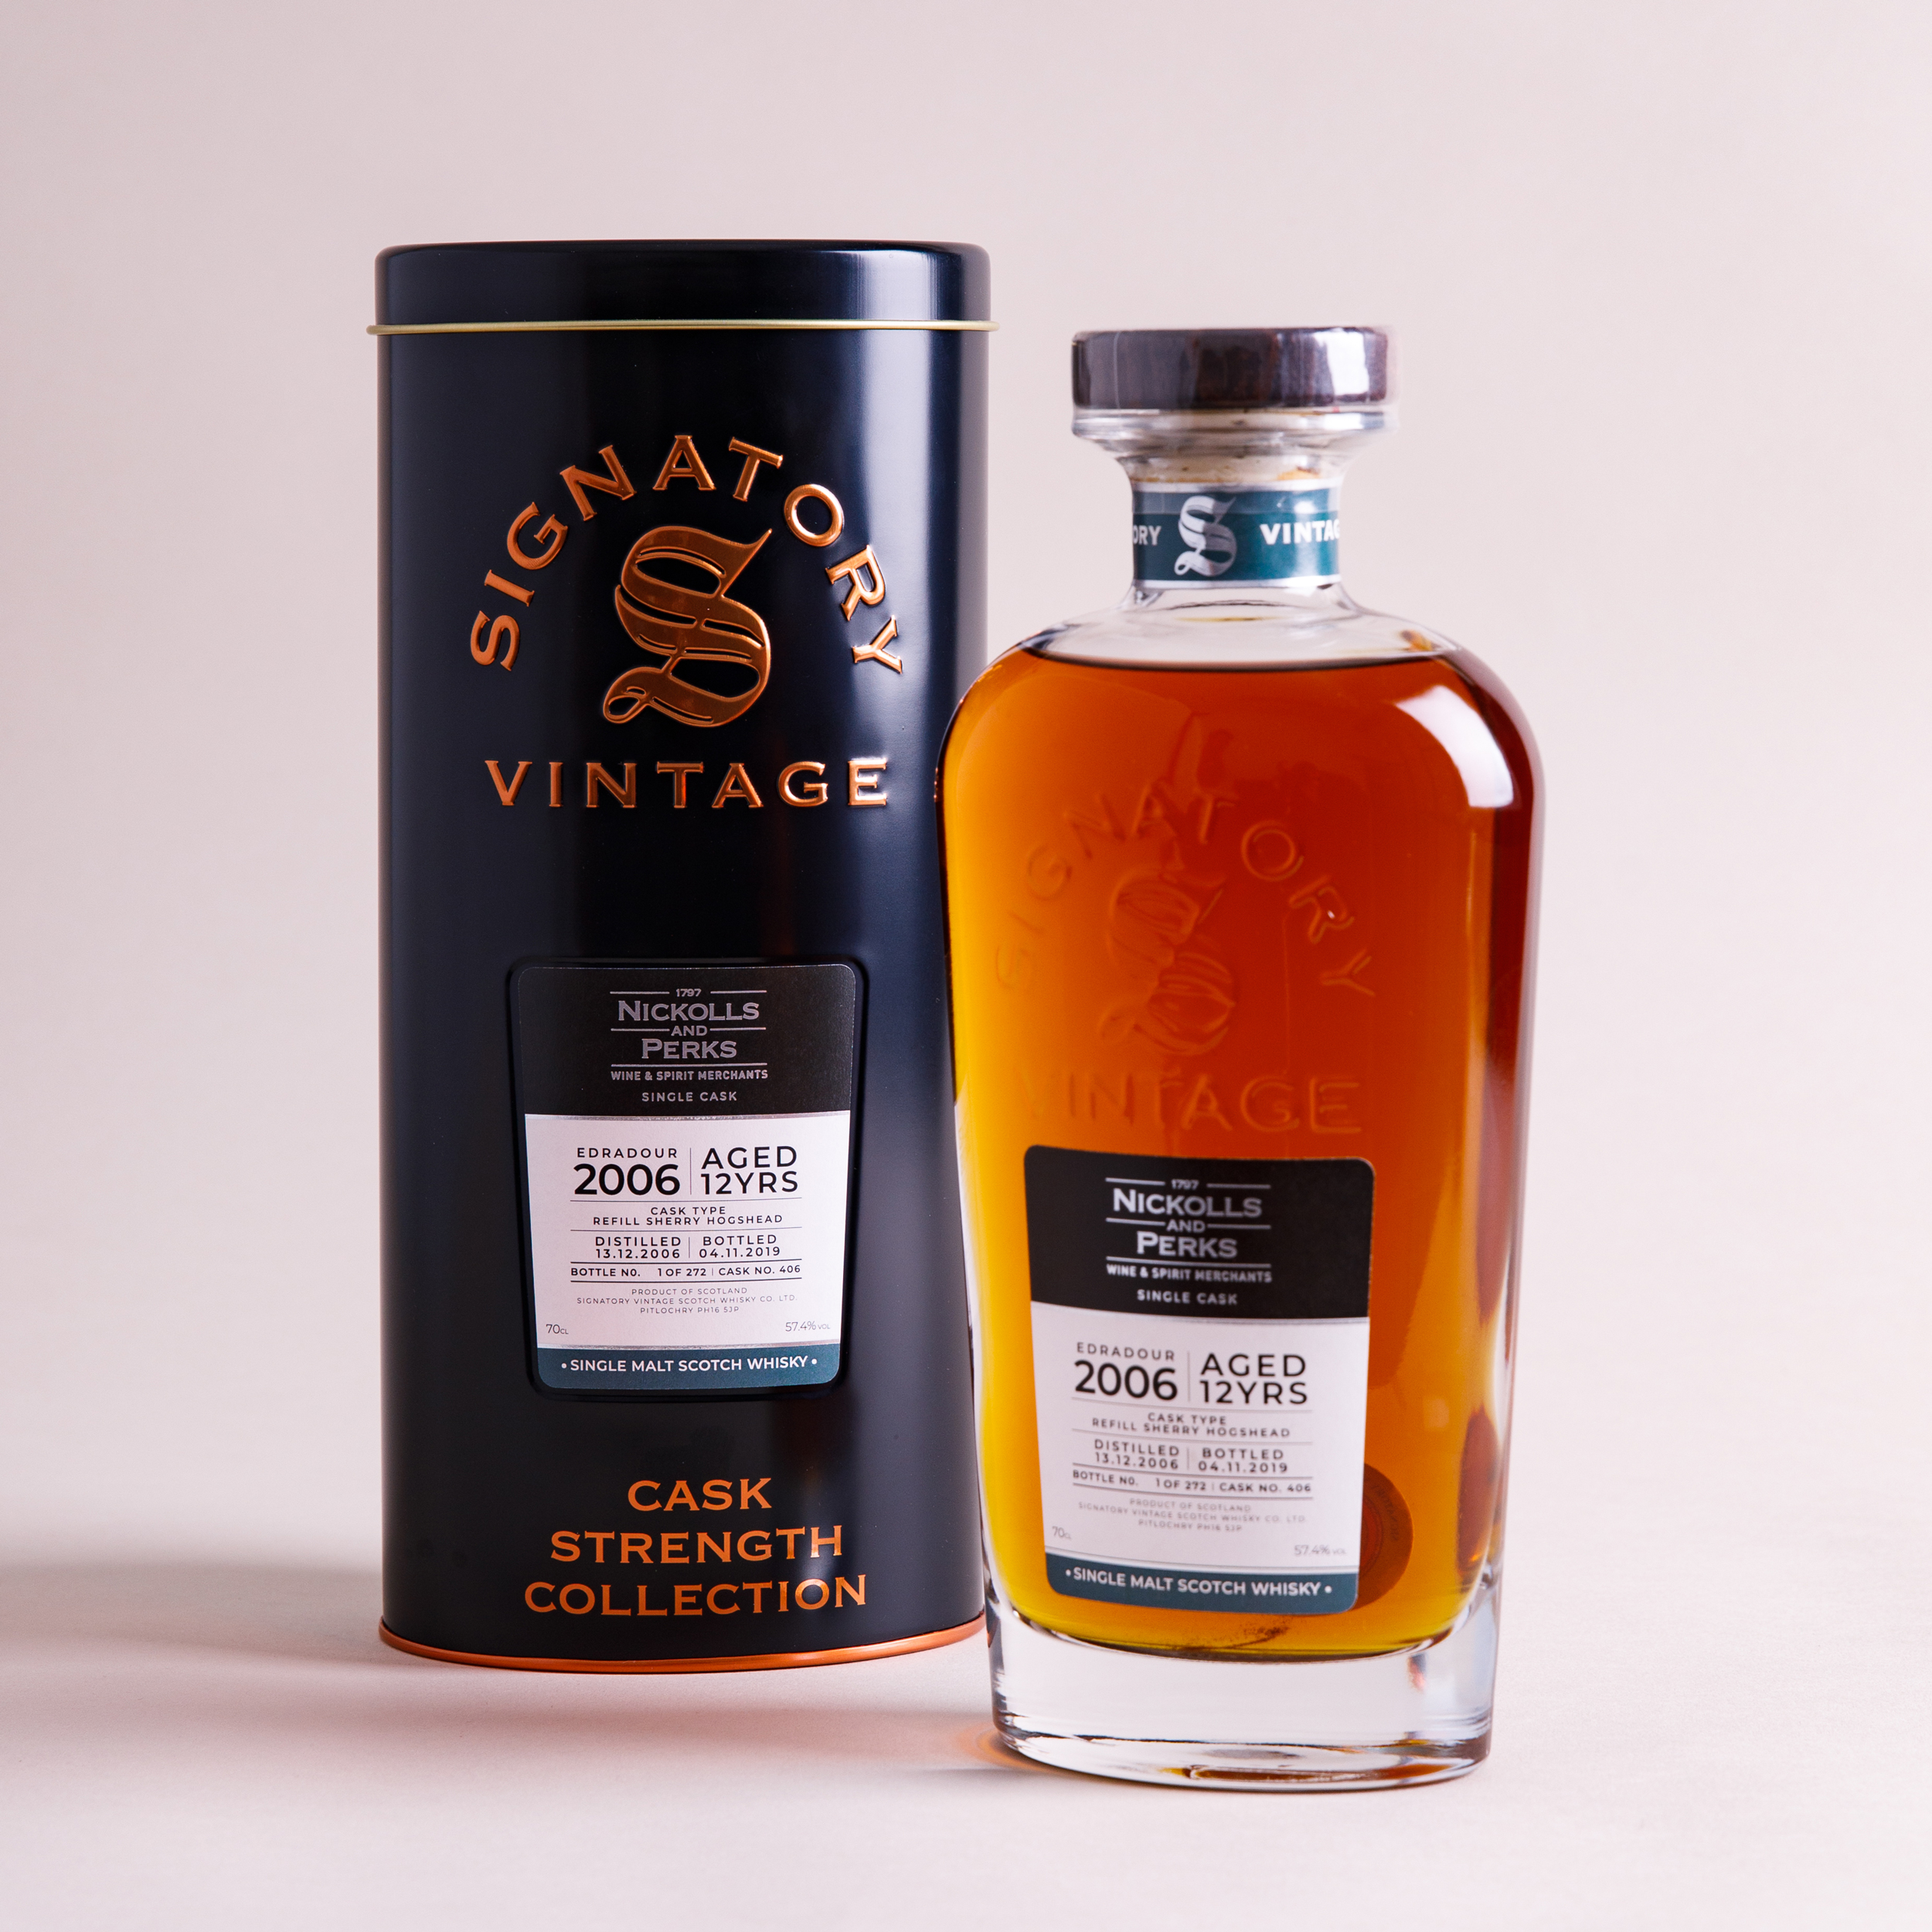 Edradour 12 Year Old 2006 (cask 406) - Signatory Cask Strength Collection (Nickolls & Perks Exclusive)